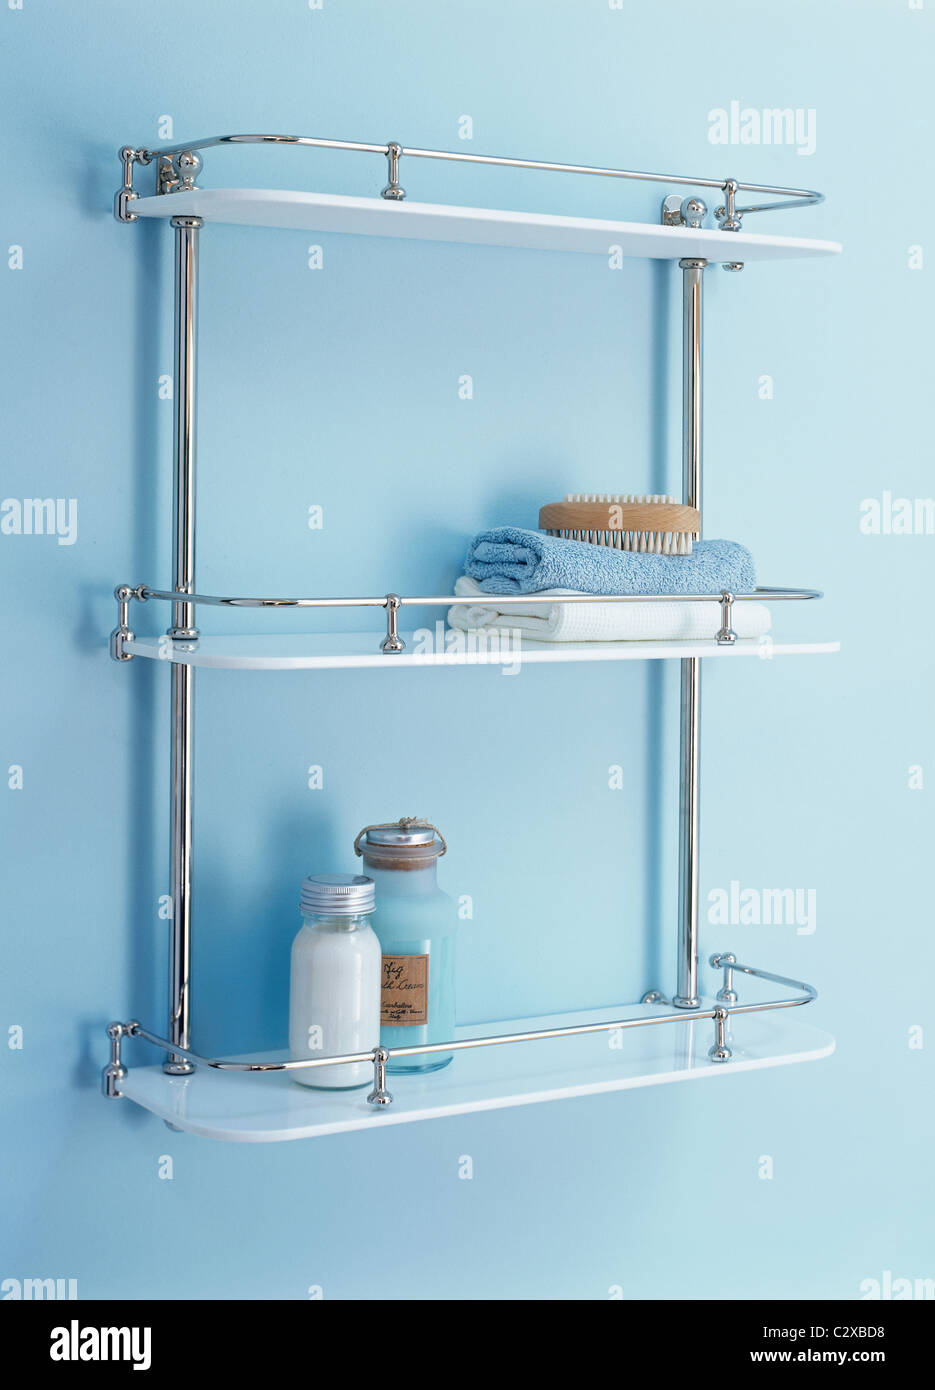 bathroom shelves Stock Photo: 36229796 - Alamy